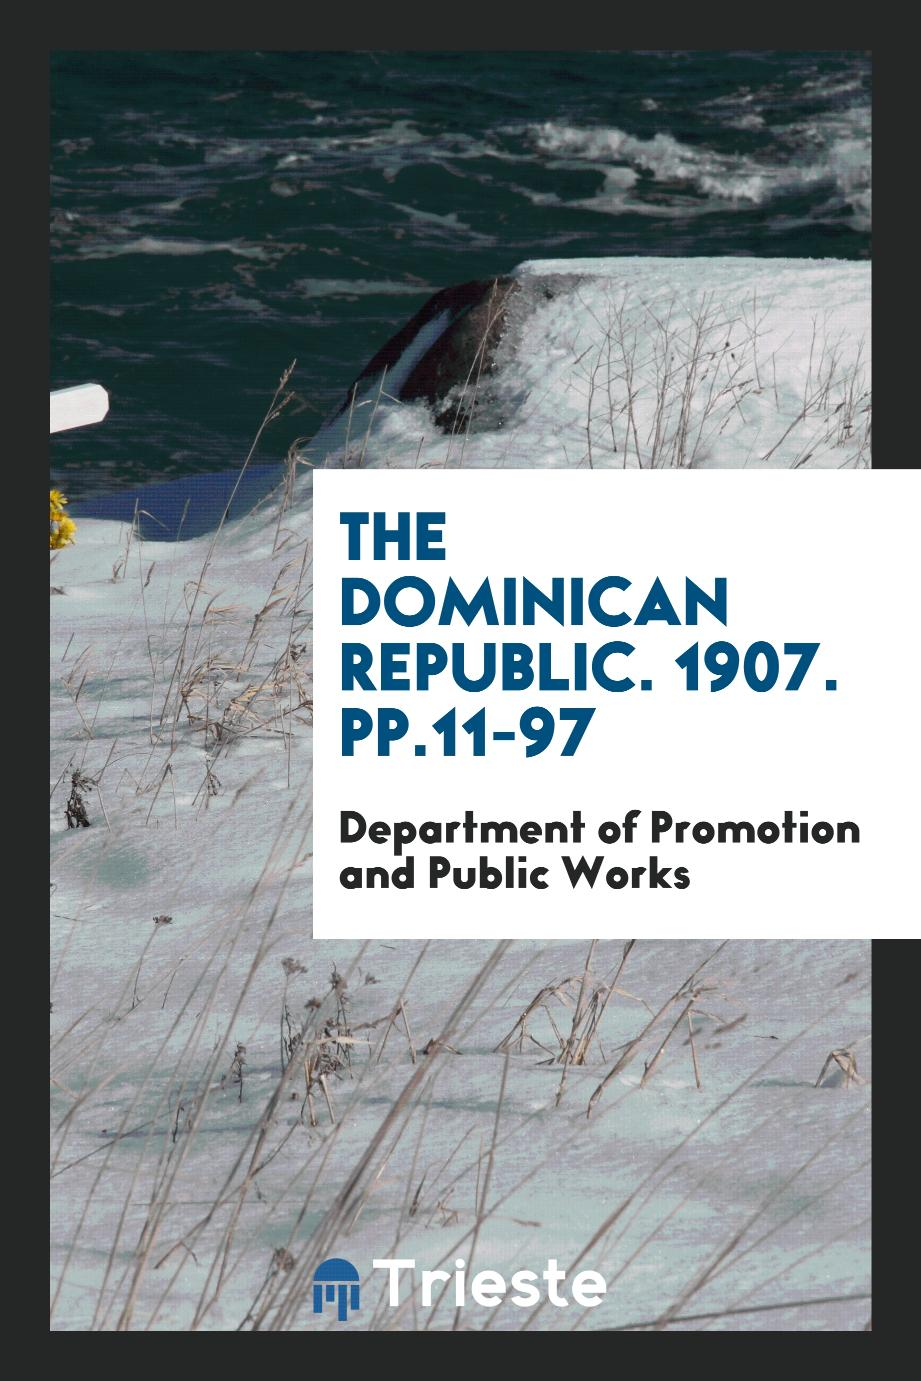 The Dominican Republic. 1907. pp.11-97